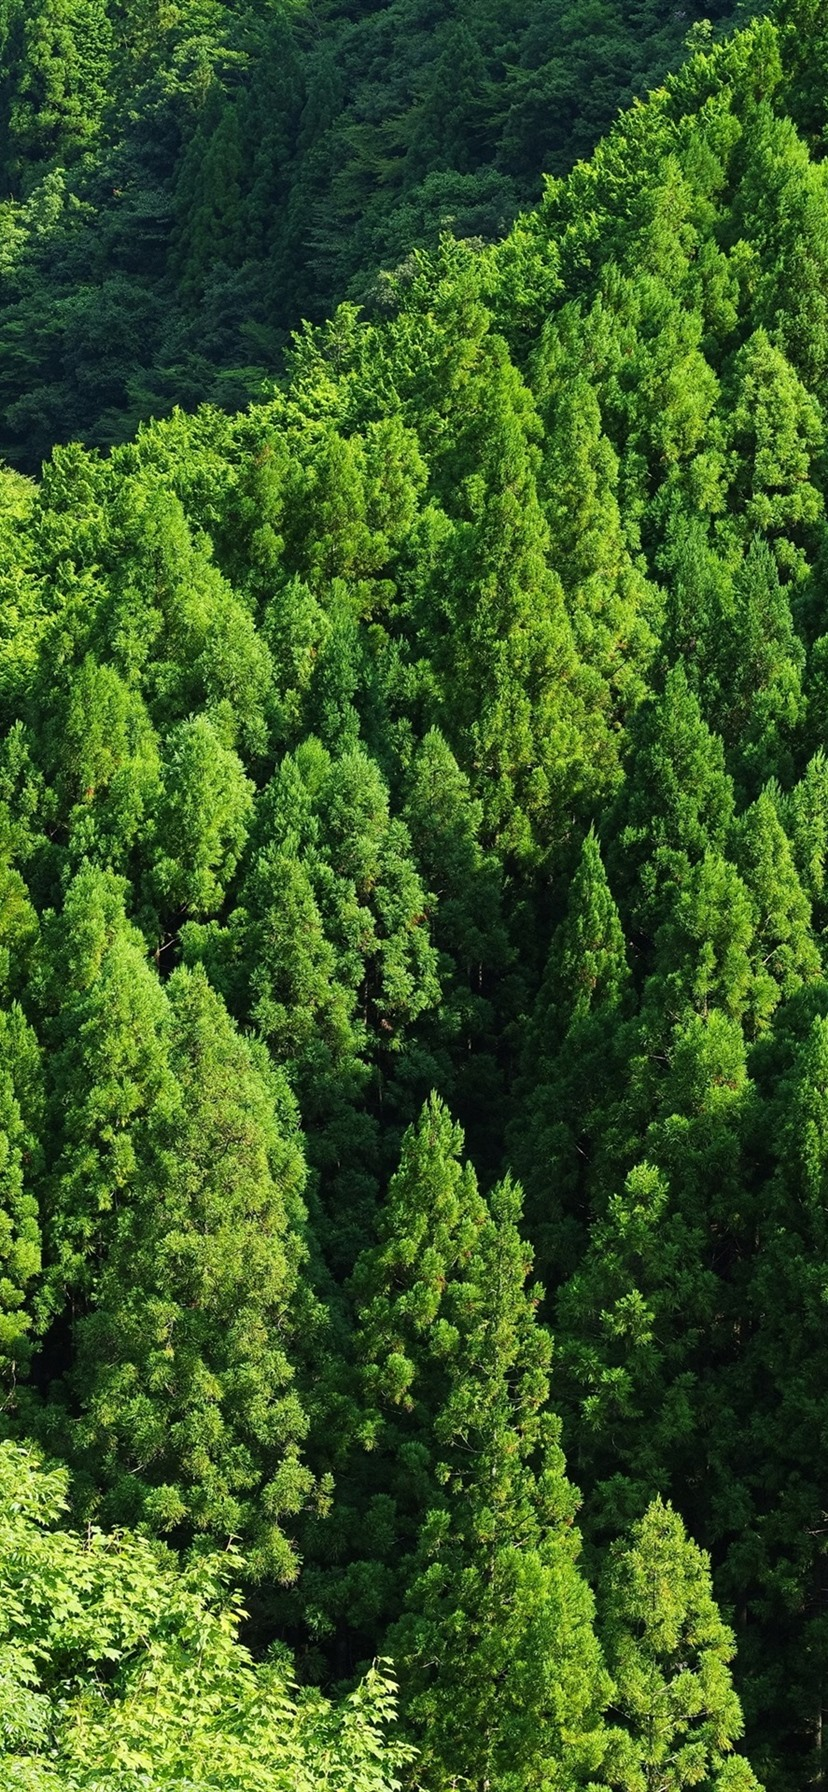 Wallpaper Green Forest Trees Top View 3840x2160 Uhd 4k Picture Image